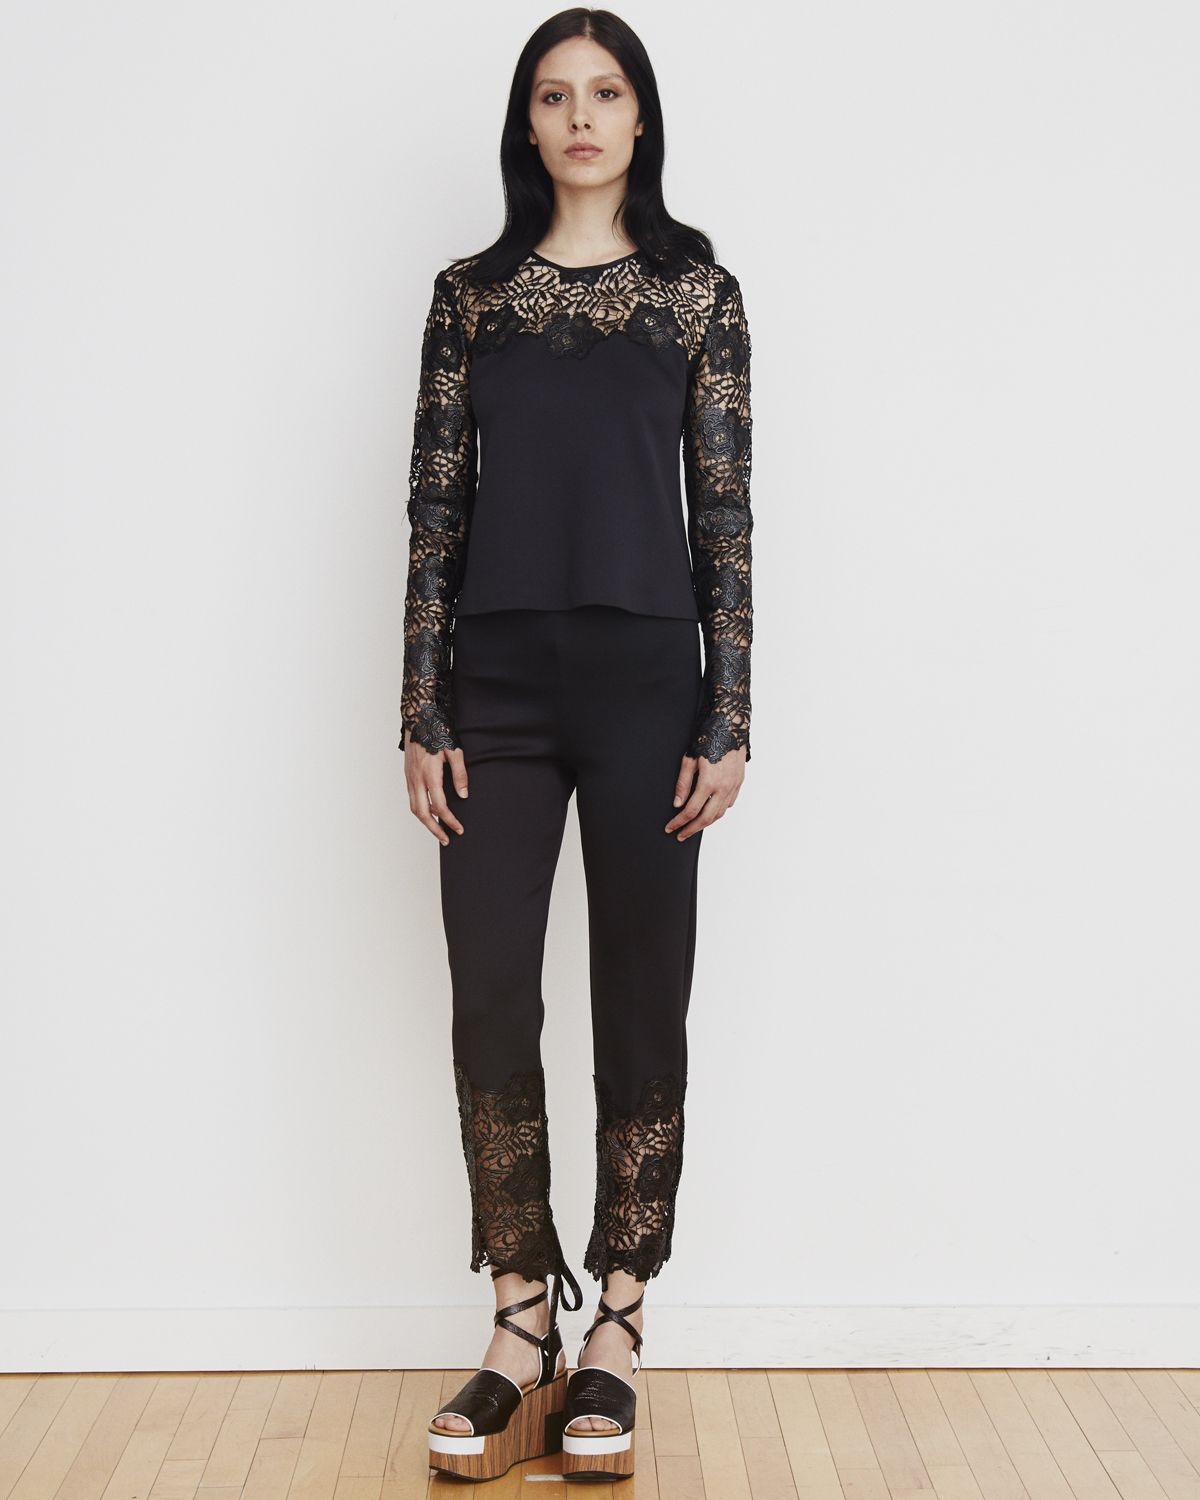 Long Sleeve Lace Top & Pants   Holiday 2015 Collection by Clover Canyon